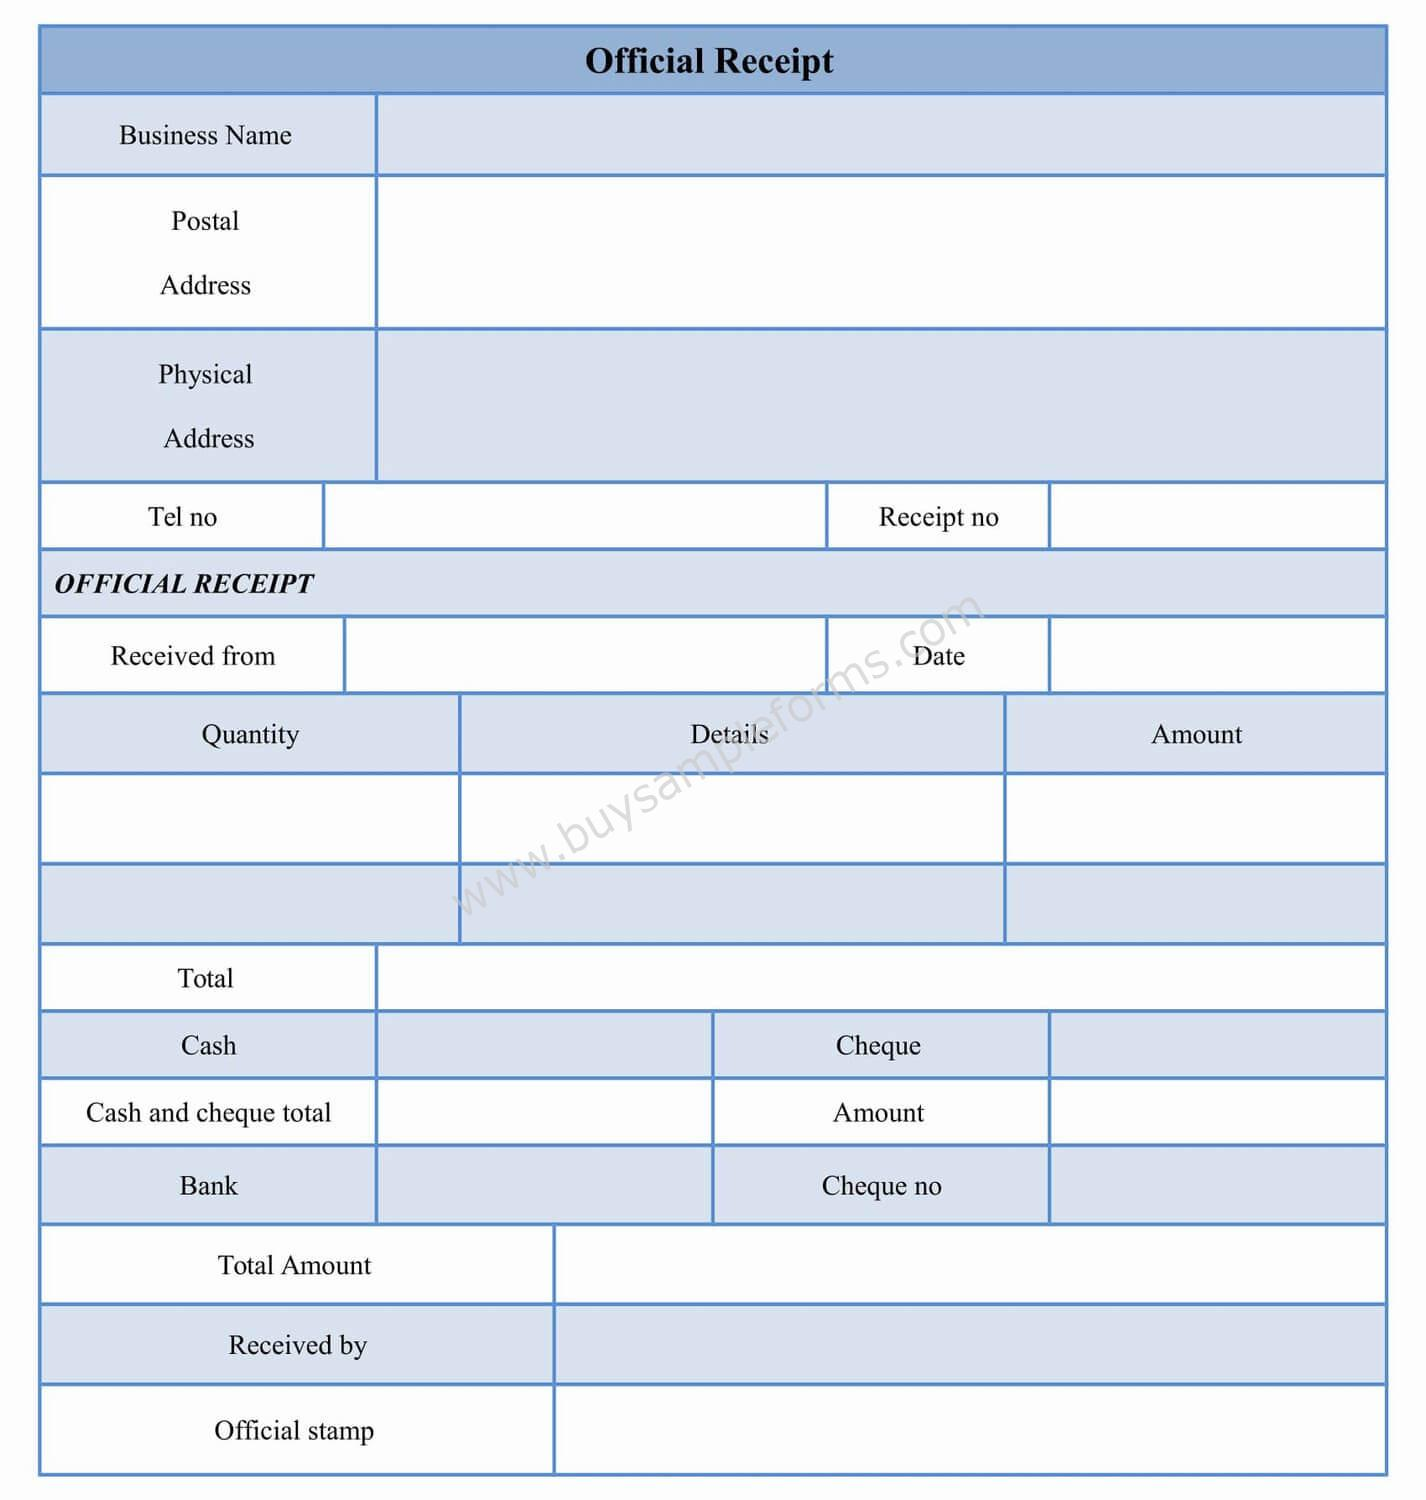 Official receipt form template word download easy to edit official receipt form template at only 300 saigontimesfo